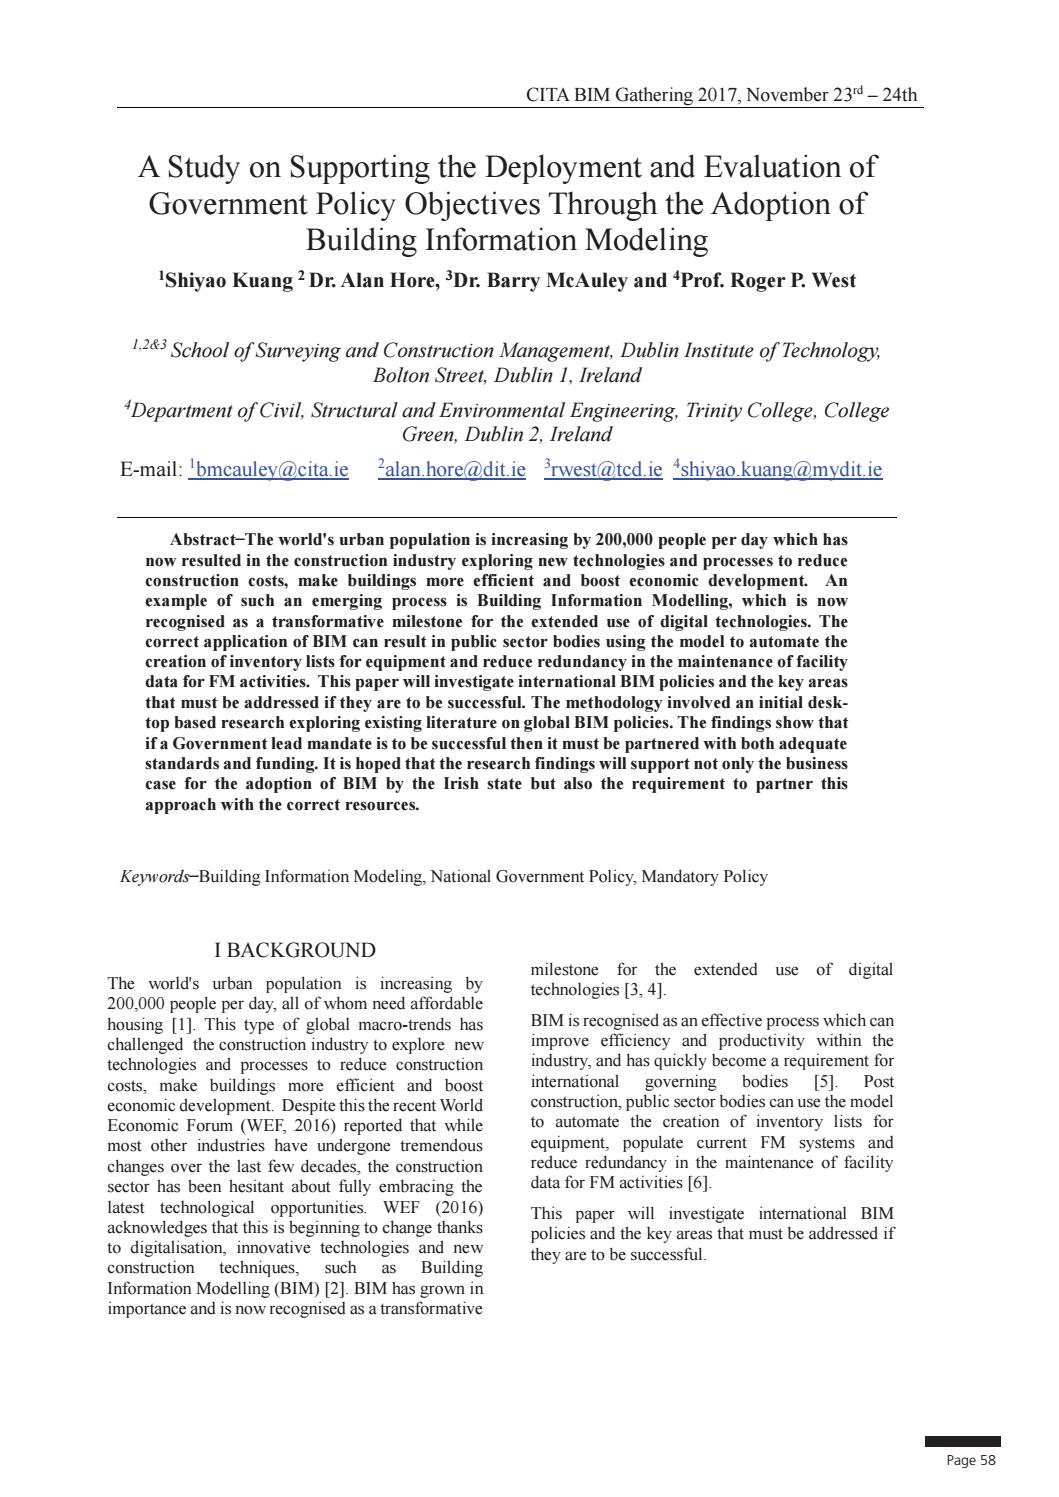 Study on supporting the deployment and evaluation bim gathering by